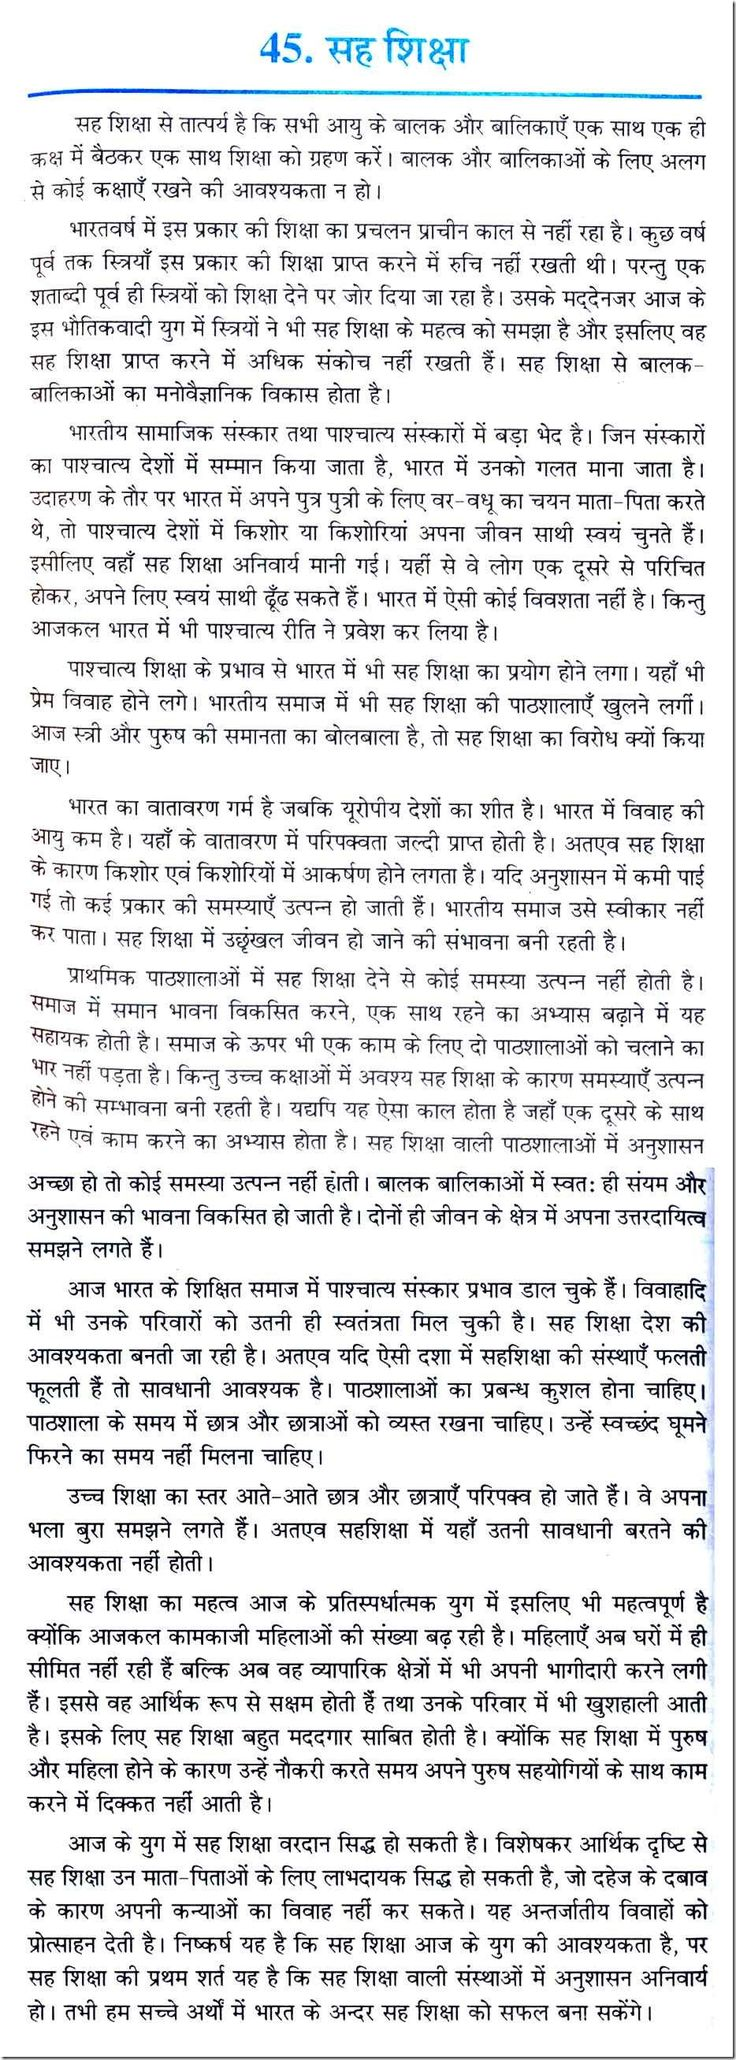 Full Size of Essay On Internet In Hindi